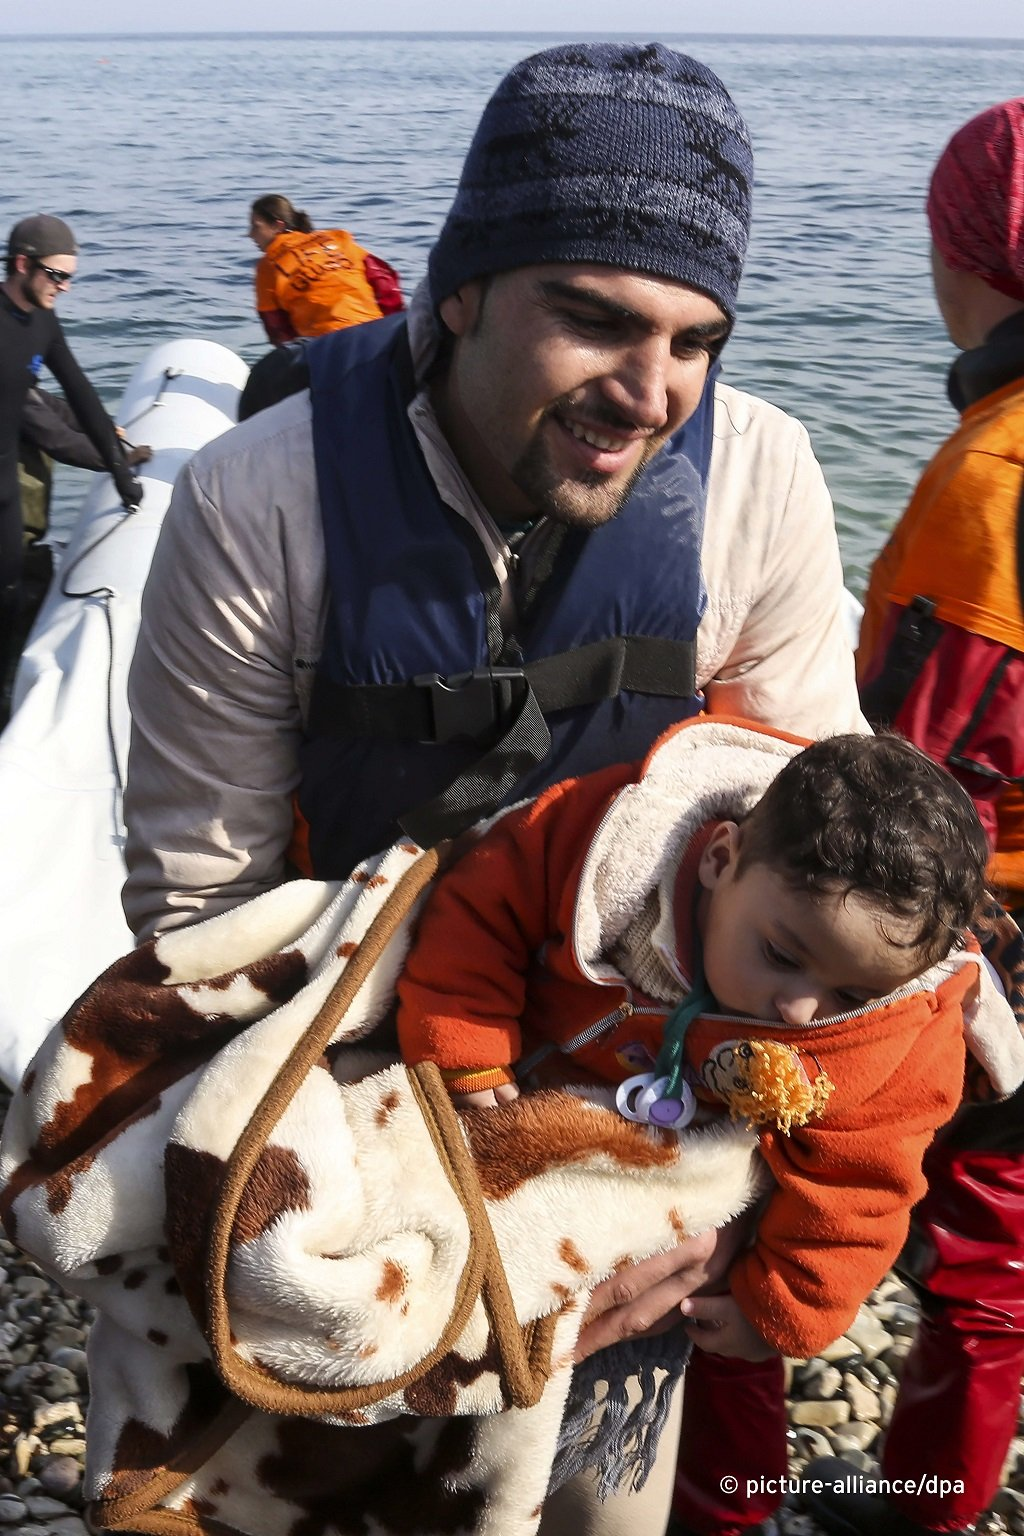 A migrant arrives on Lesbos  Photo picture-alliance